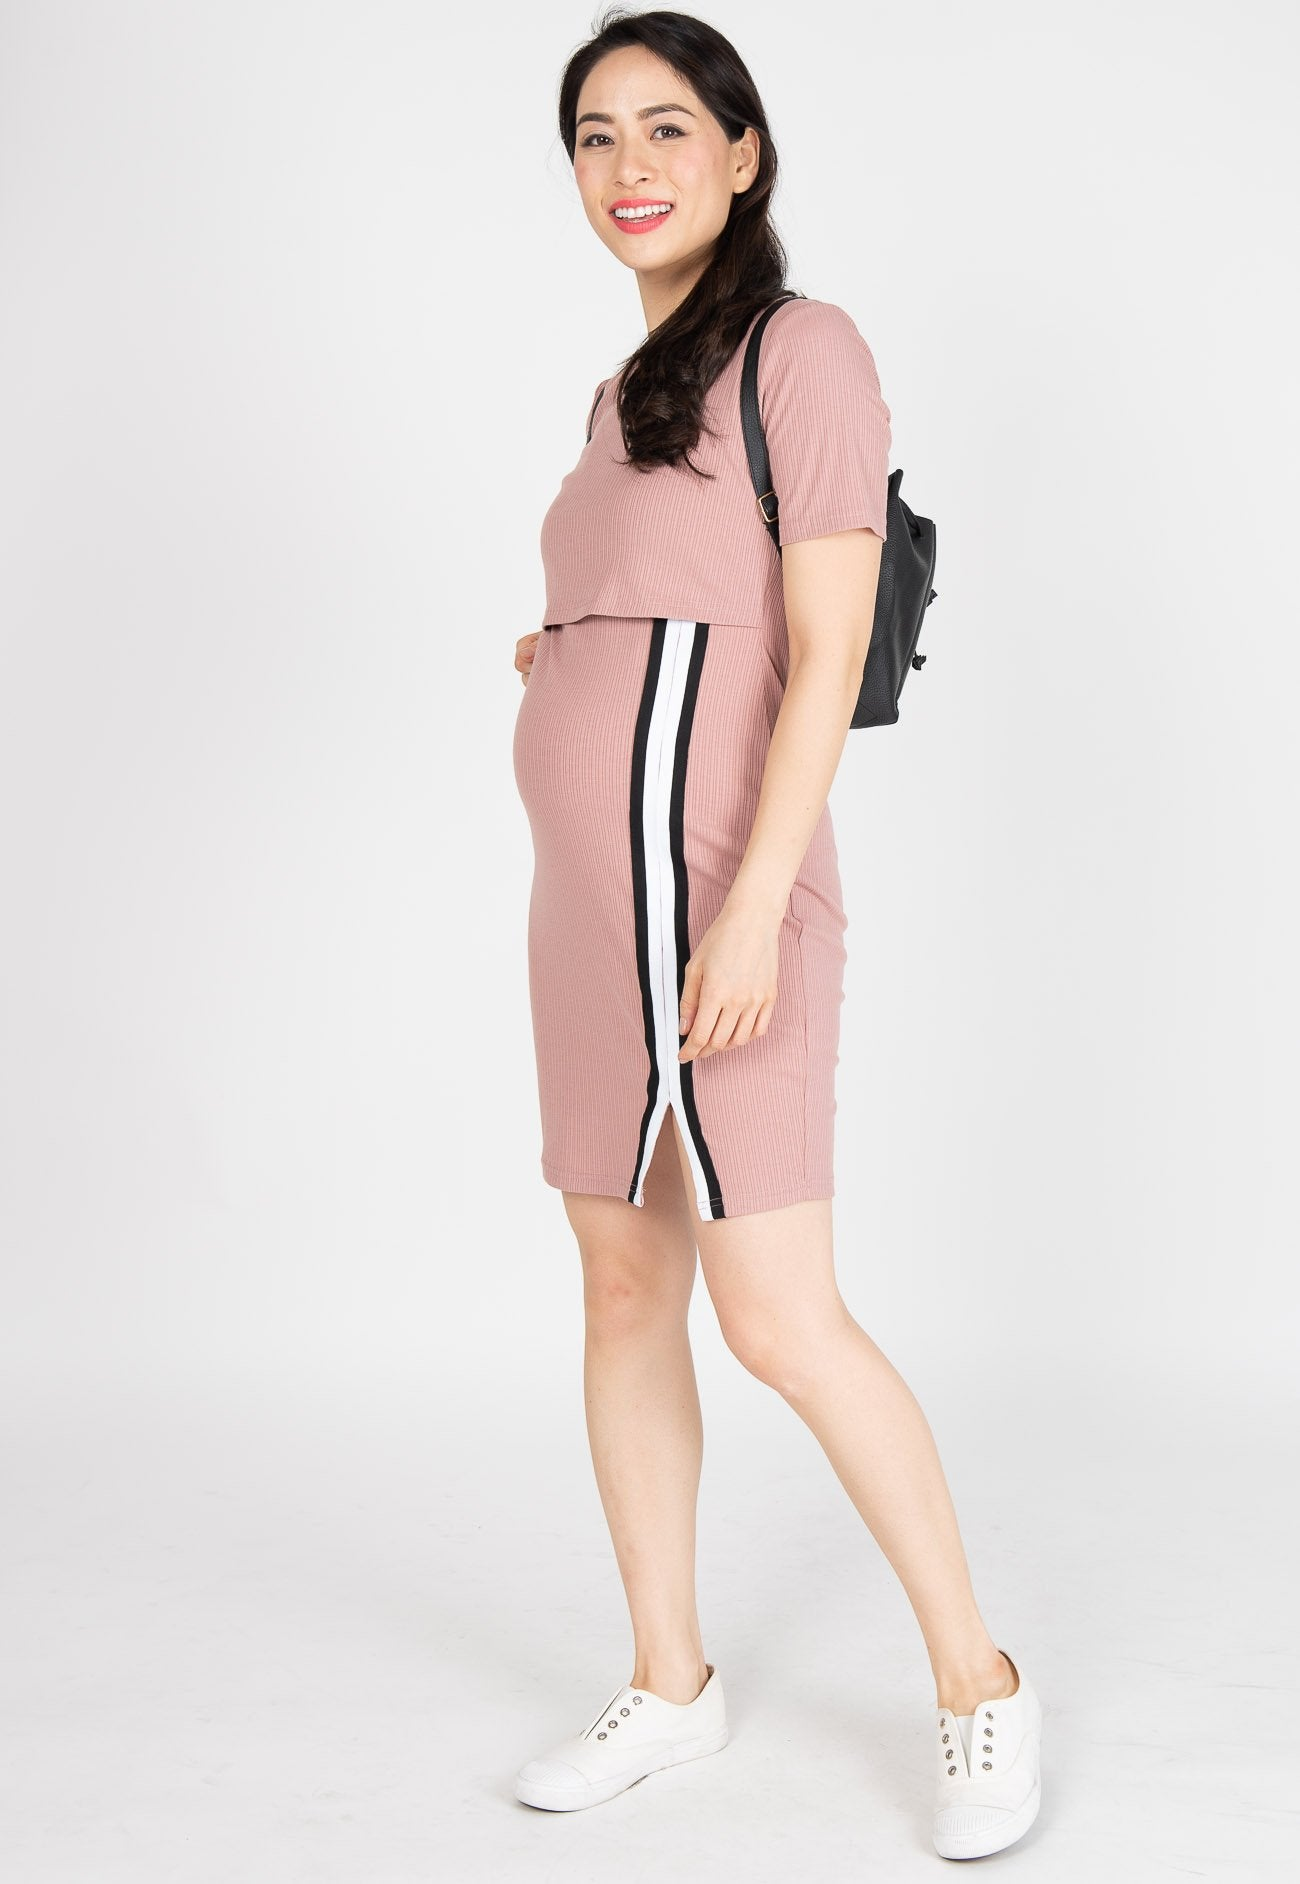 Go-Getter Bodycon Nursing Dress in Pink  by JumpEatCry - Maternity and nursing wear